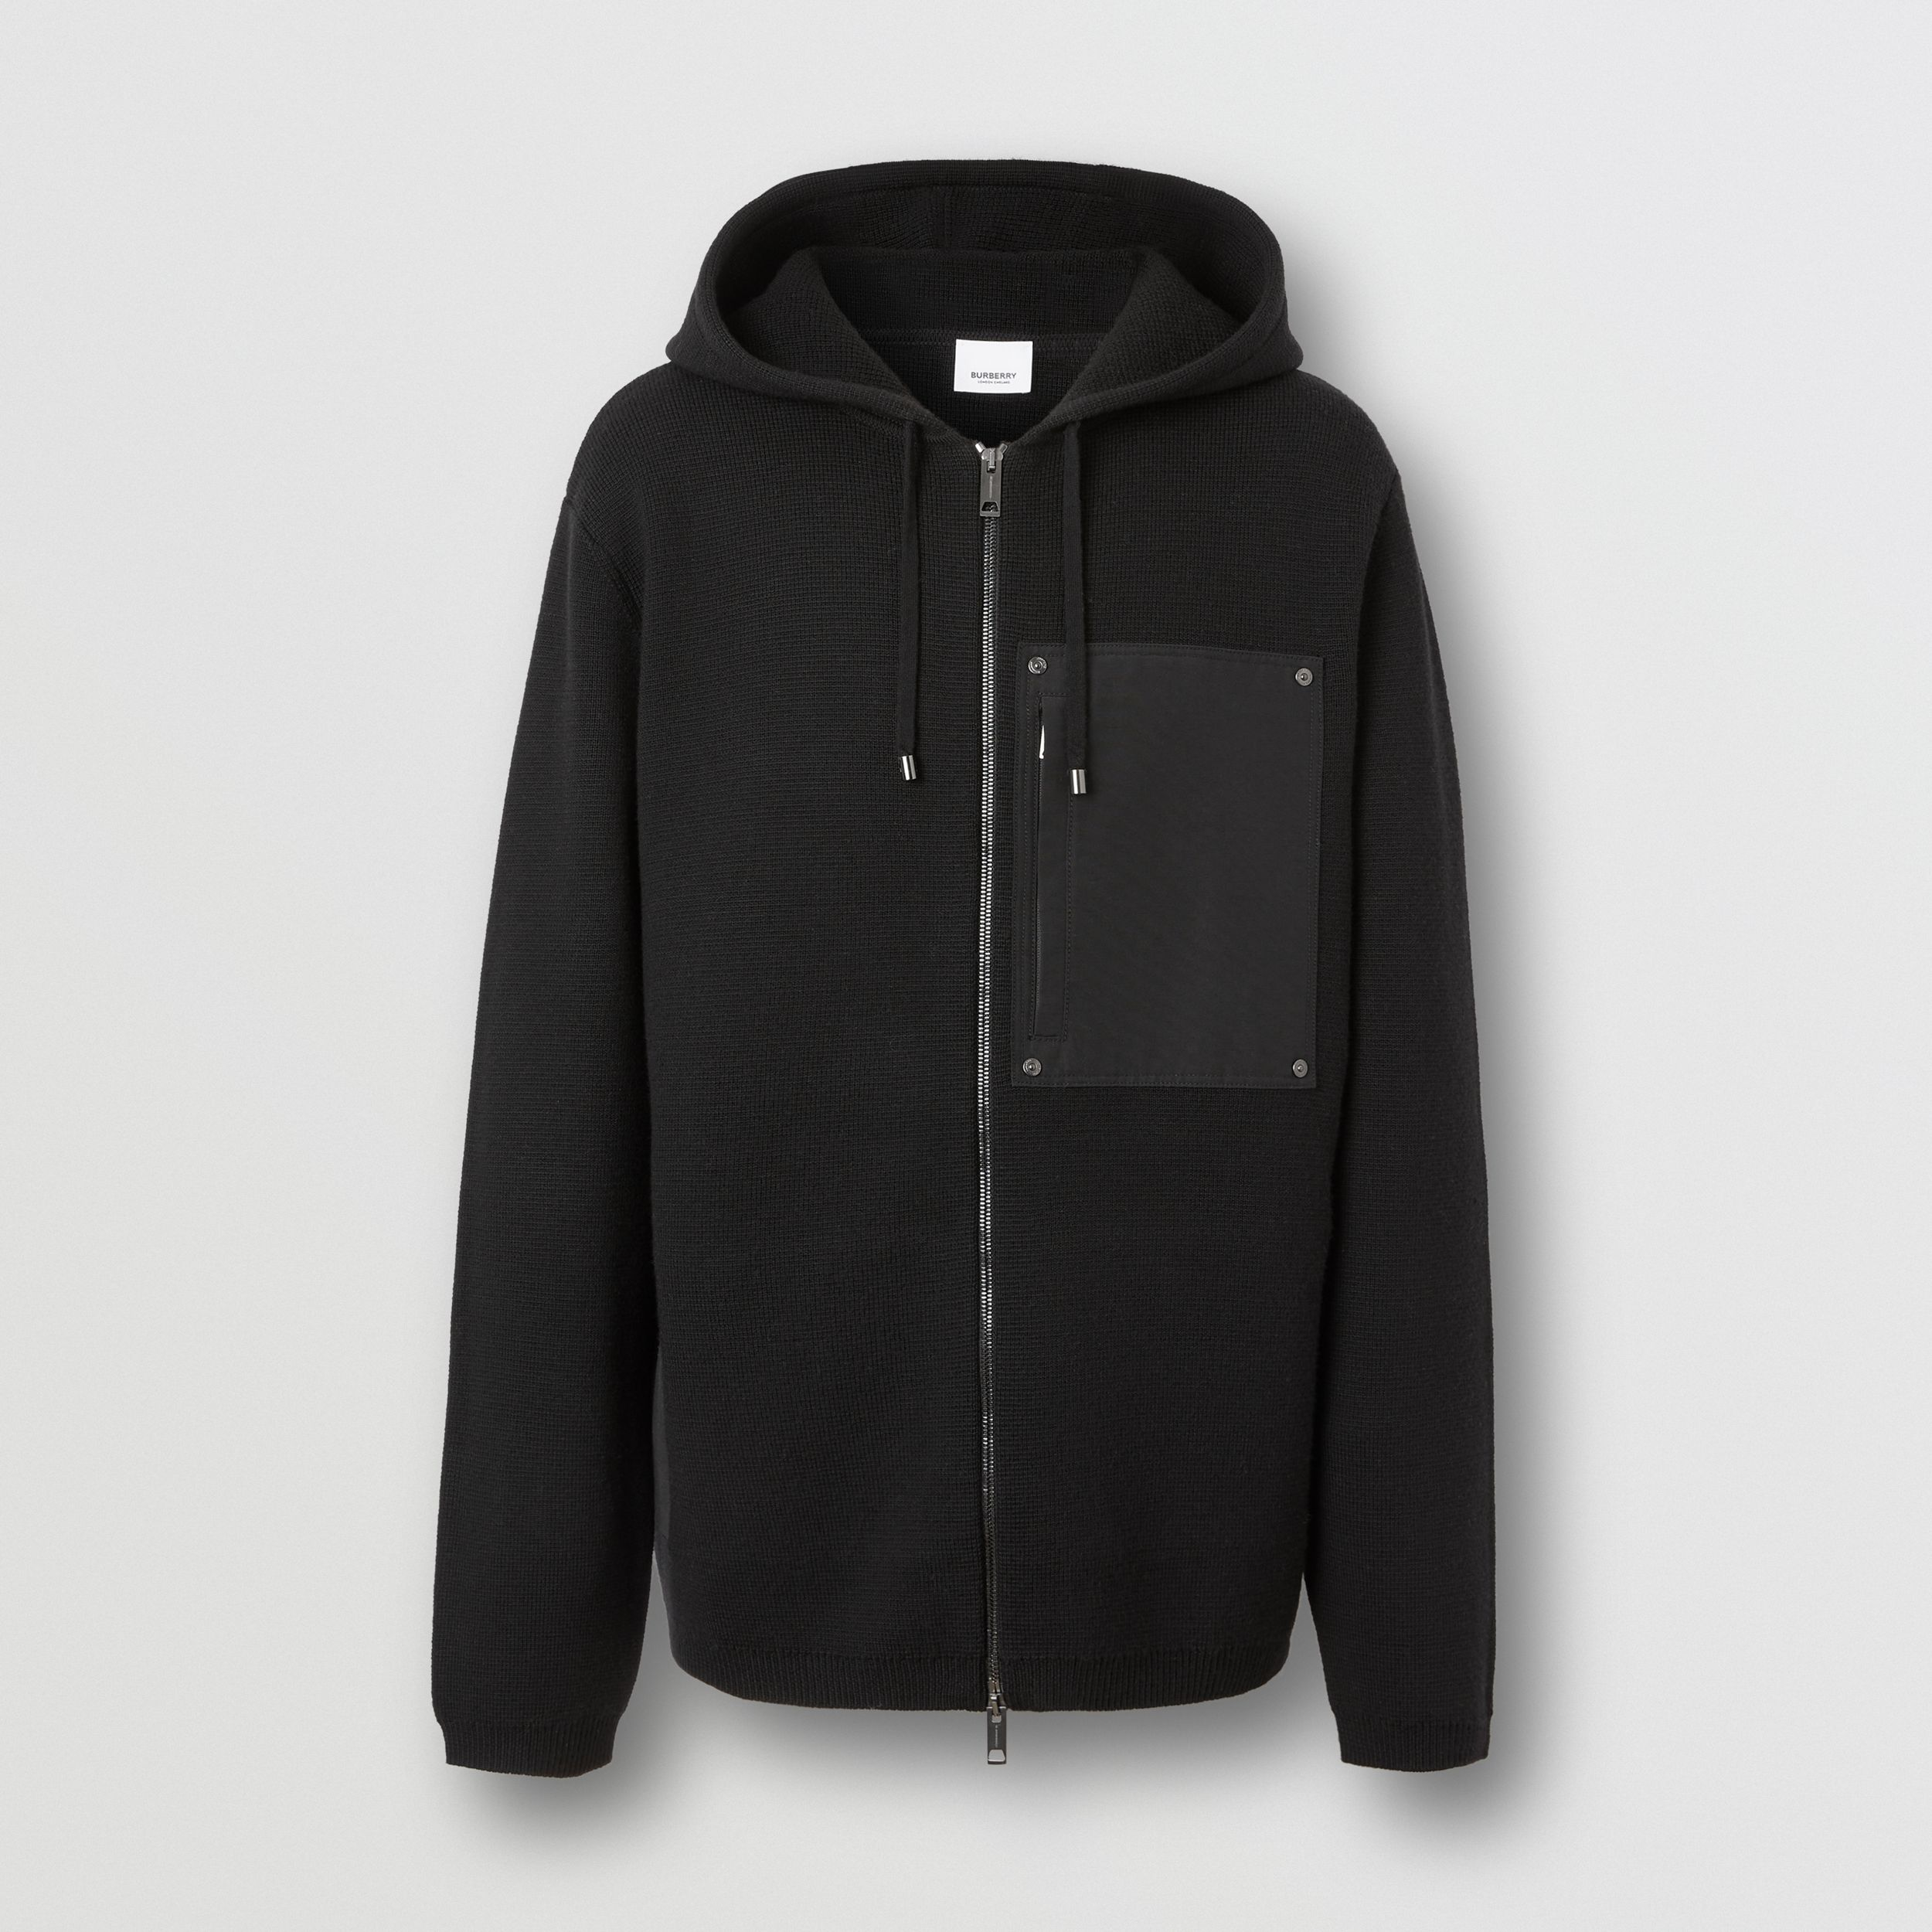 Contrast Pocket Wool Hooded Top in Black - Men | Burberry - 4